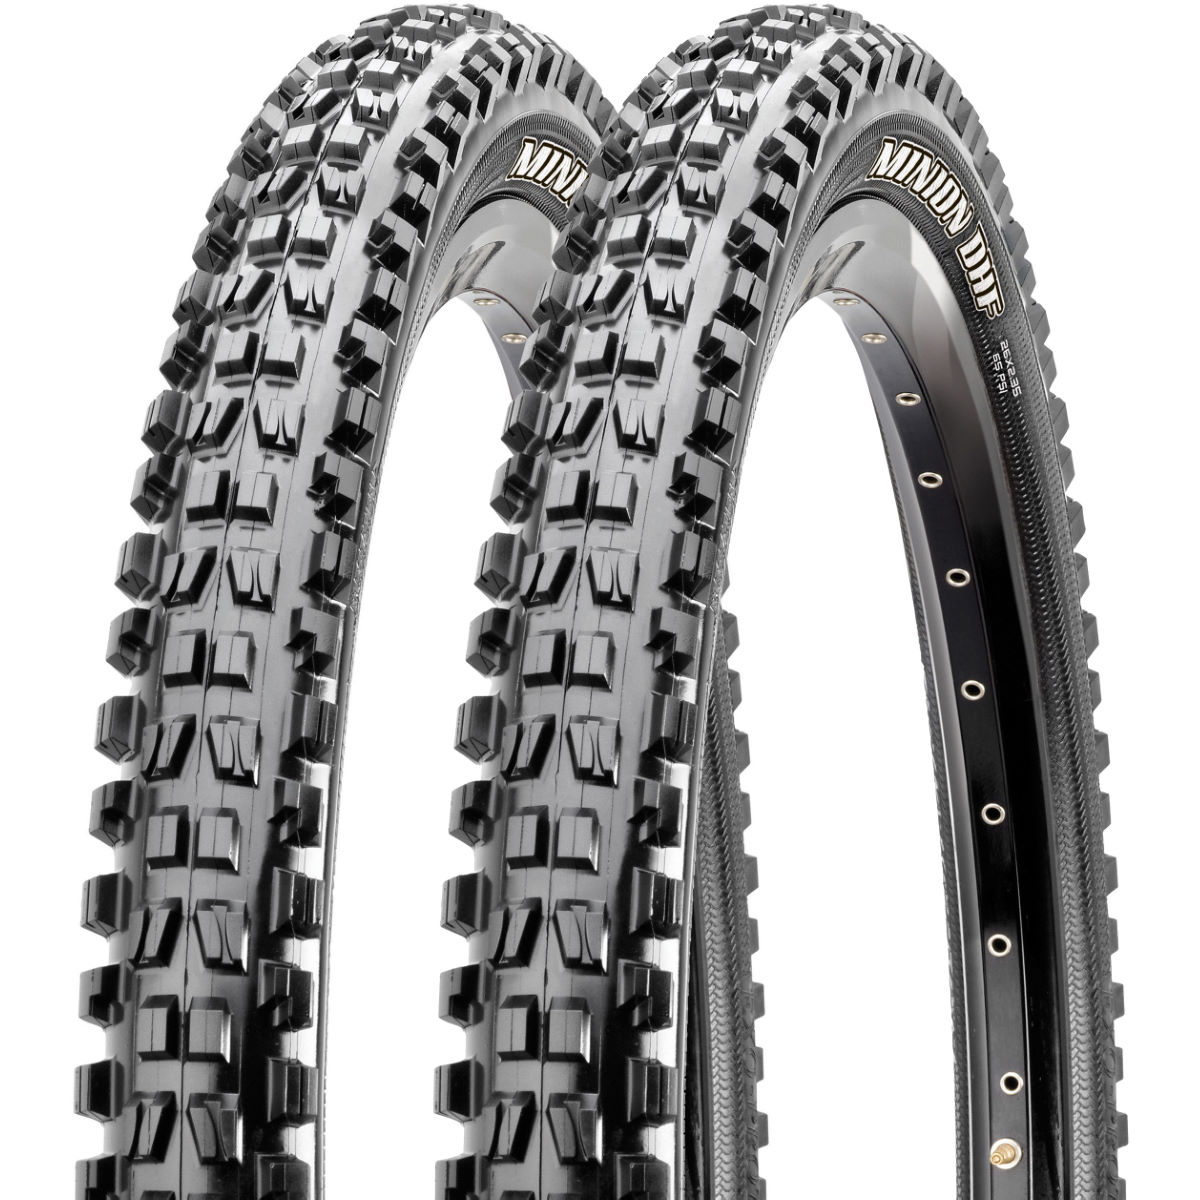 Maxxis Minion DHF 3C EXO TR Tyres - Pair   Tyres